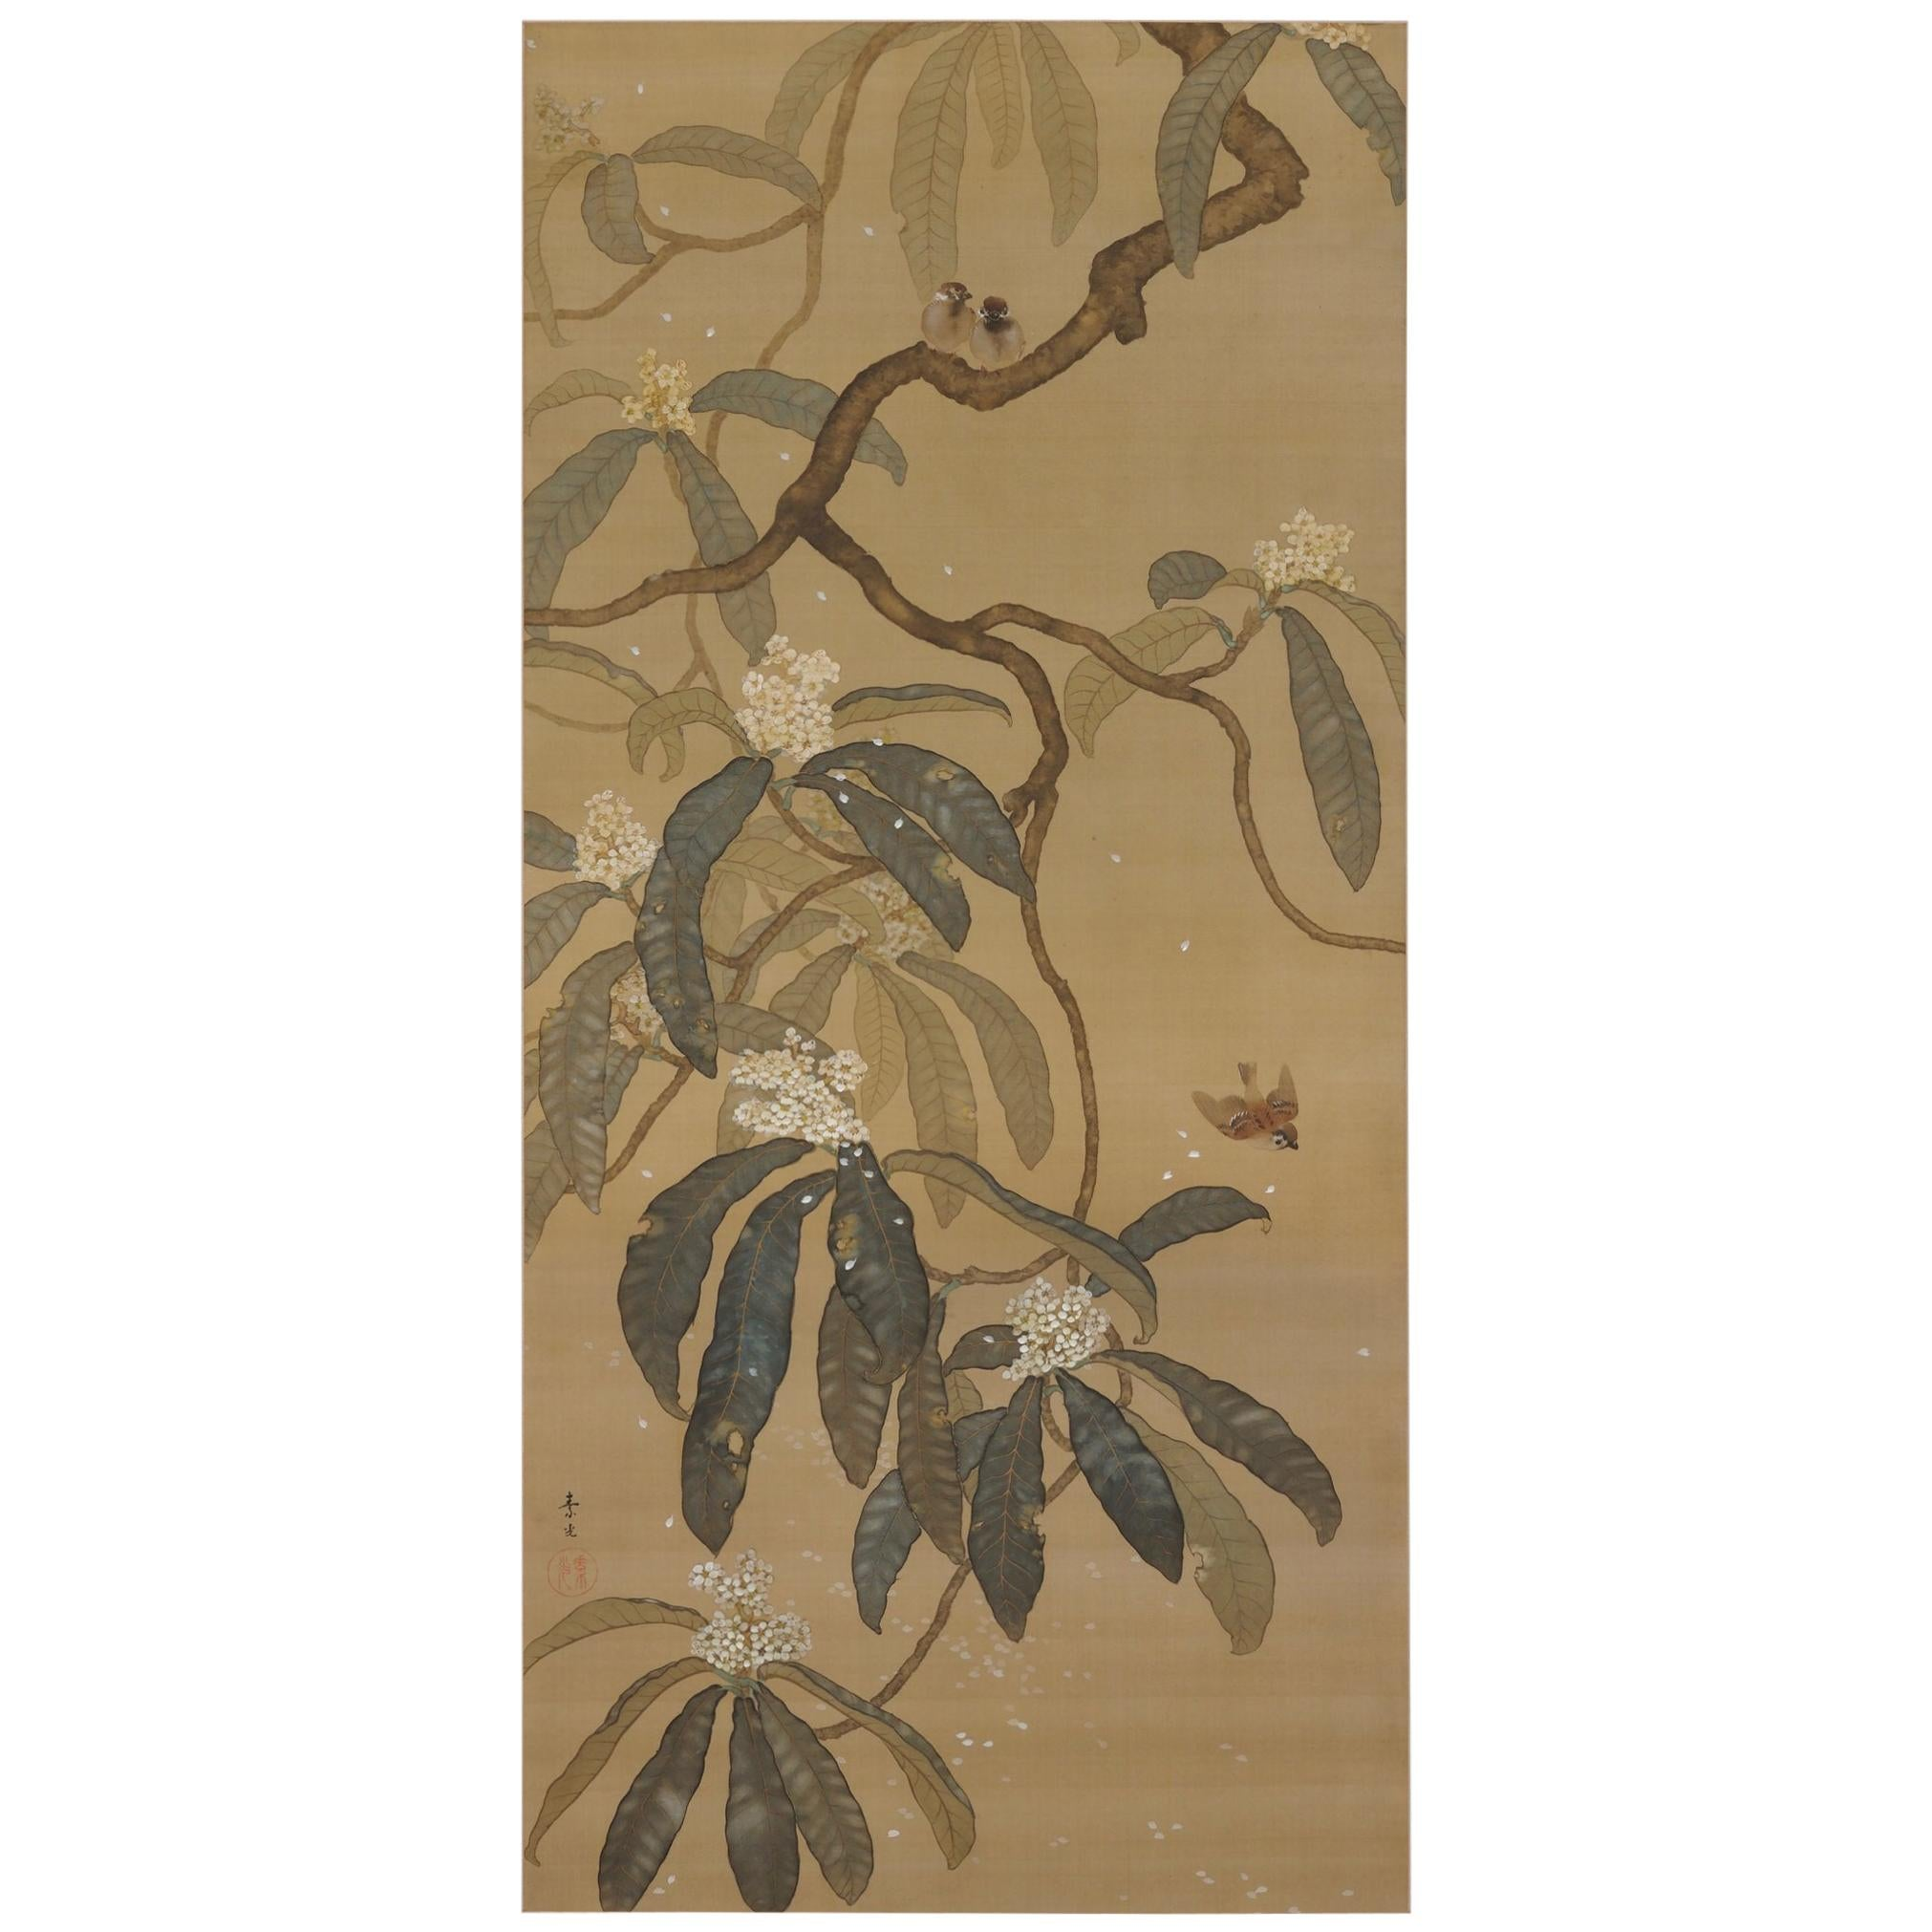 Japanese Painting, Hanging Scroll, Loquat and Sparrows, circa 1910-1915 Taisho